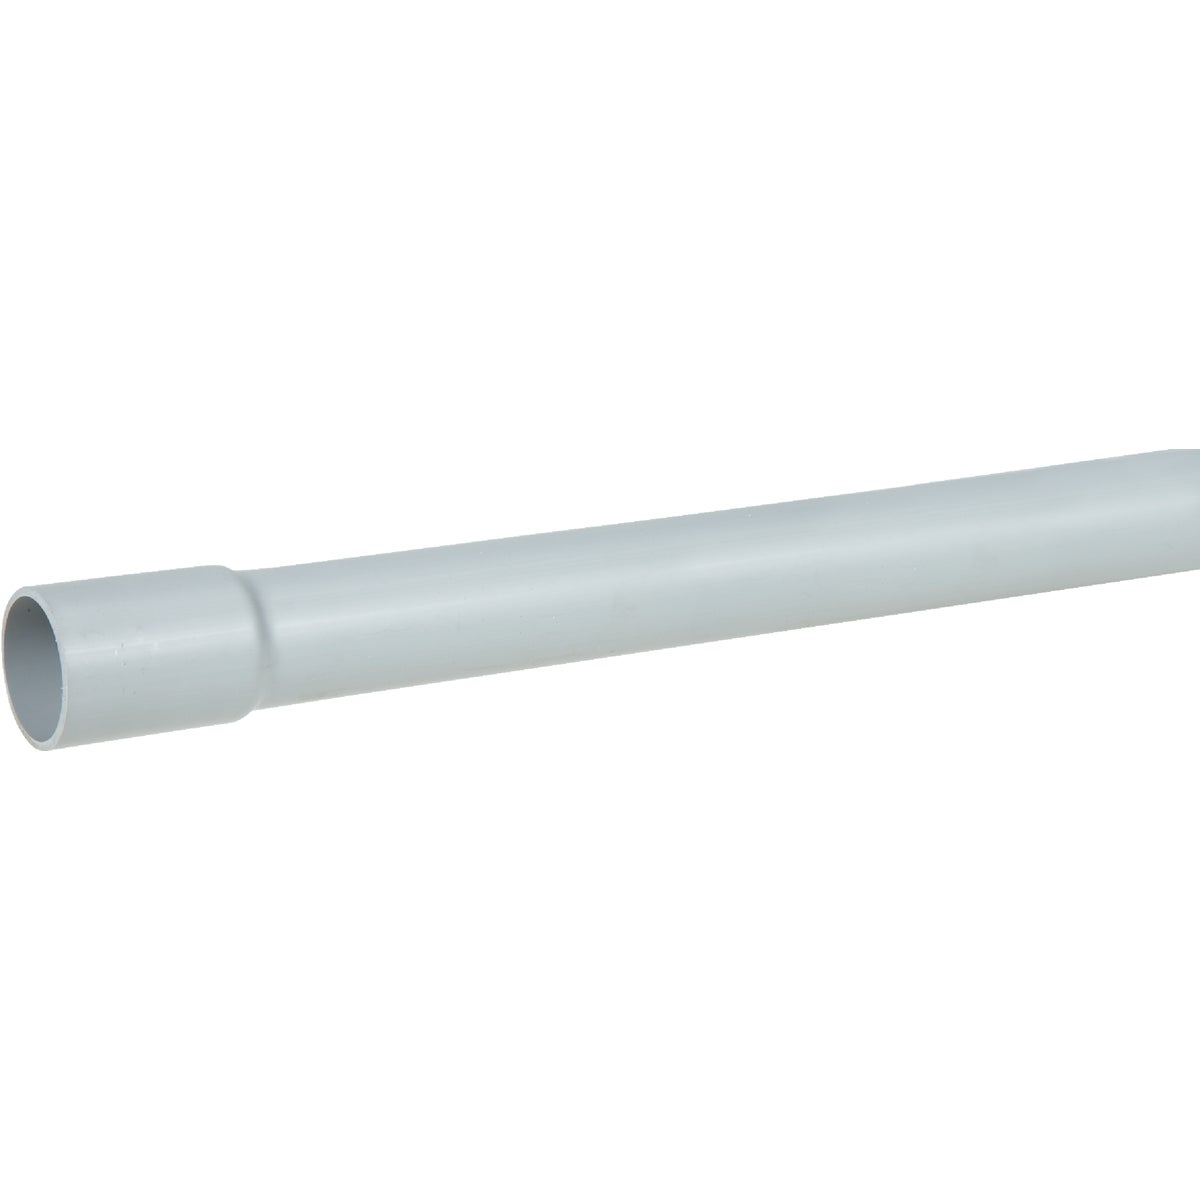 "1-1/4"" SCH40 10' CONDUIT - 49009-010 by Prime Conduit"